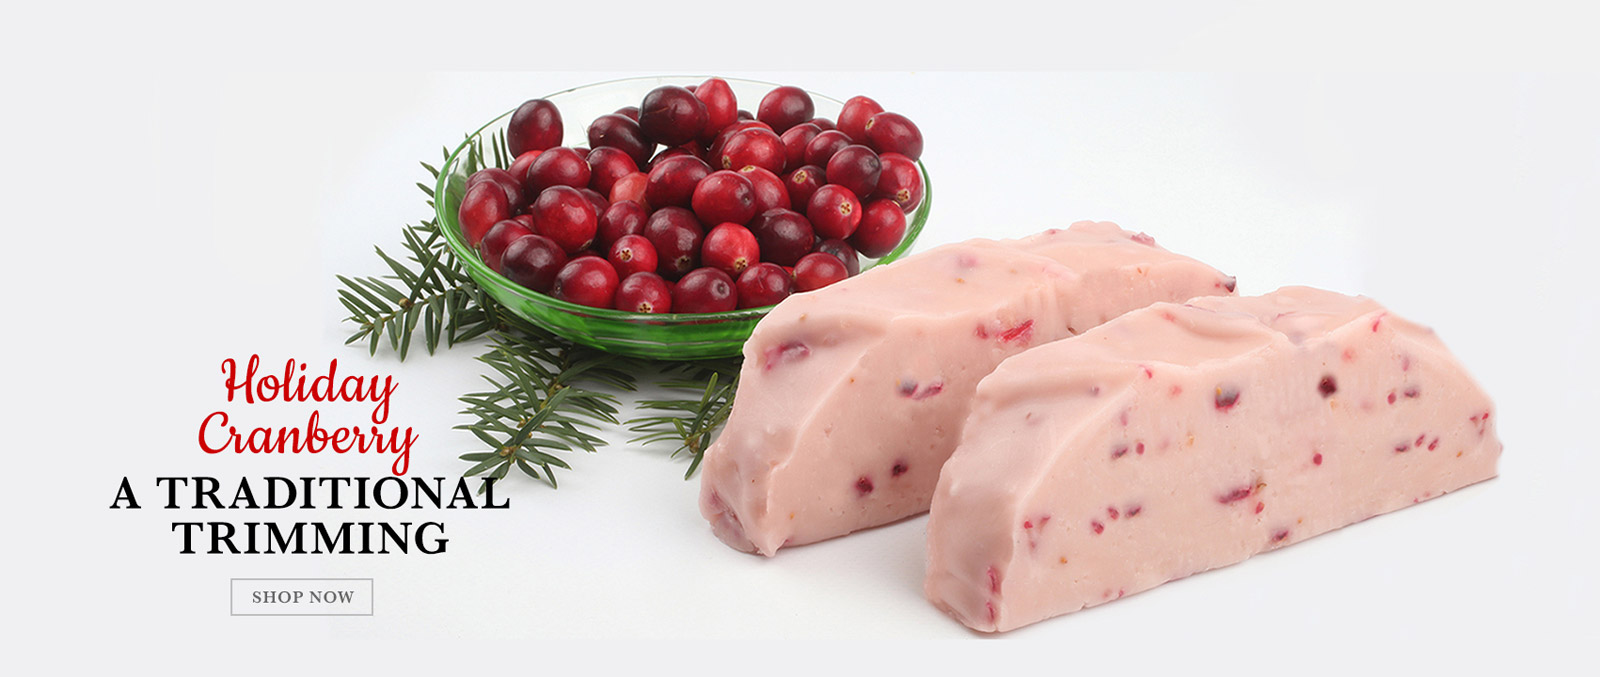 Holiday Cranberry